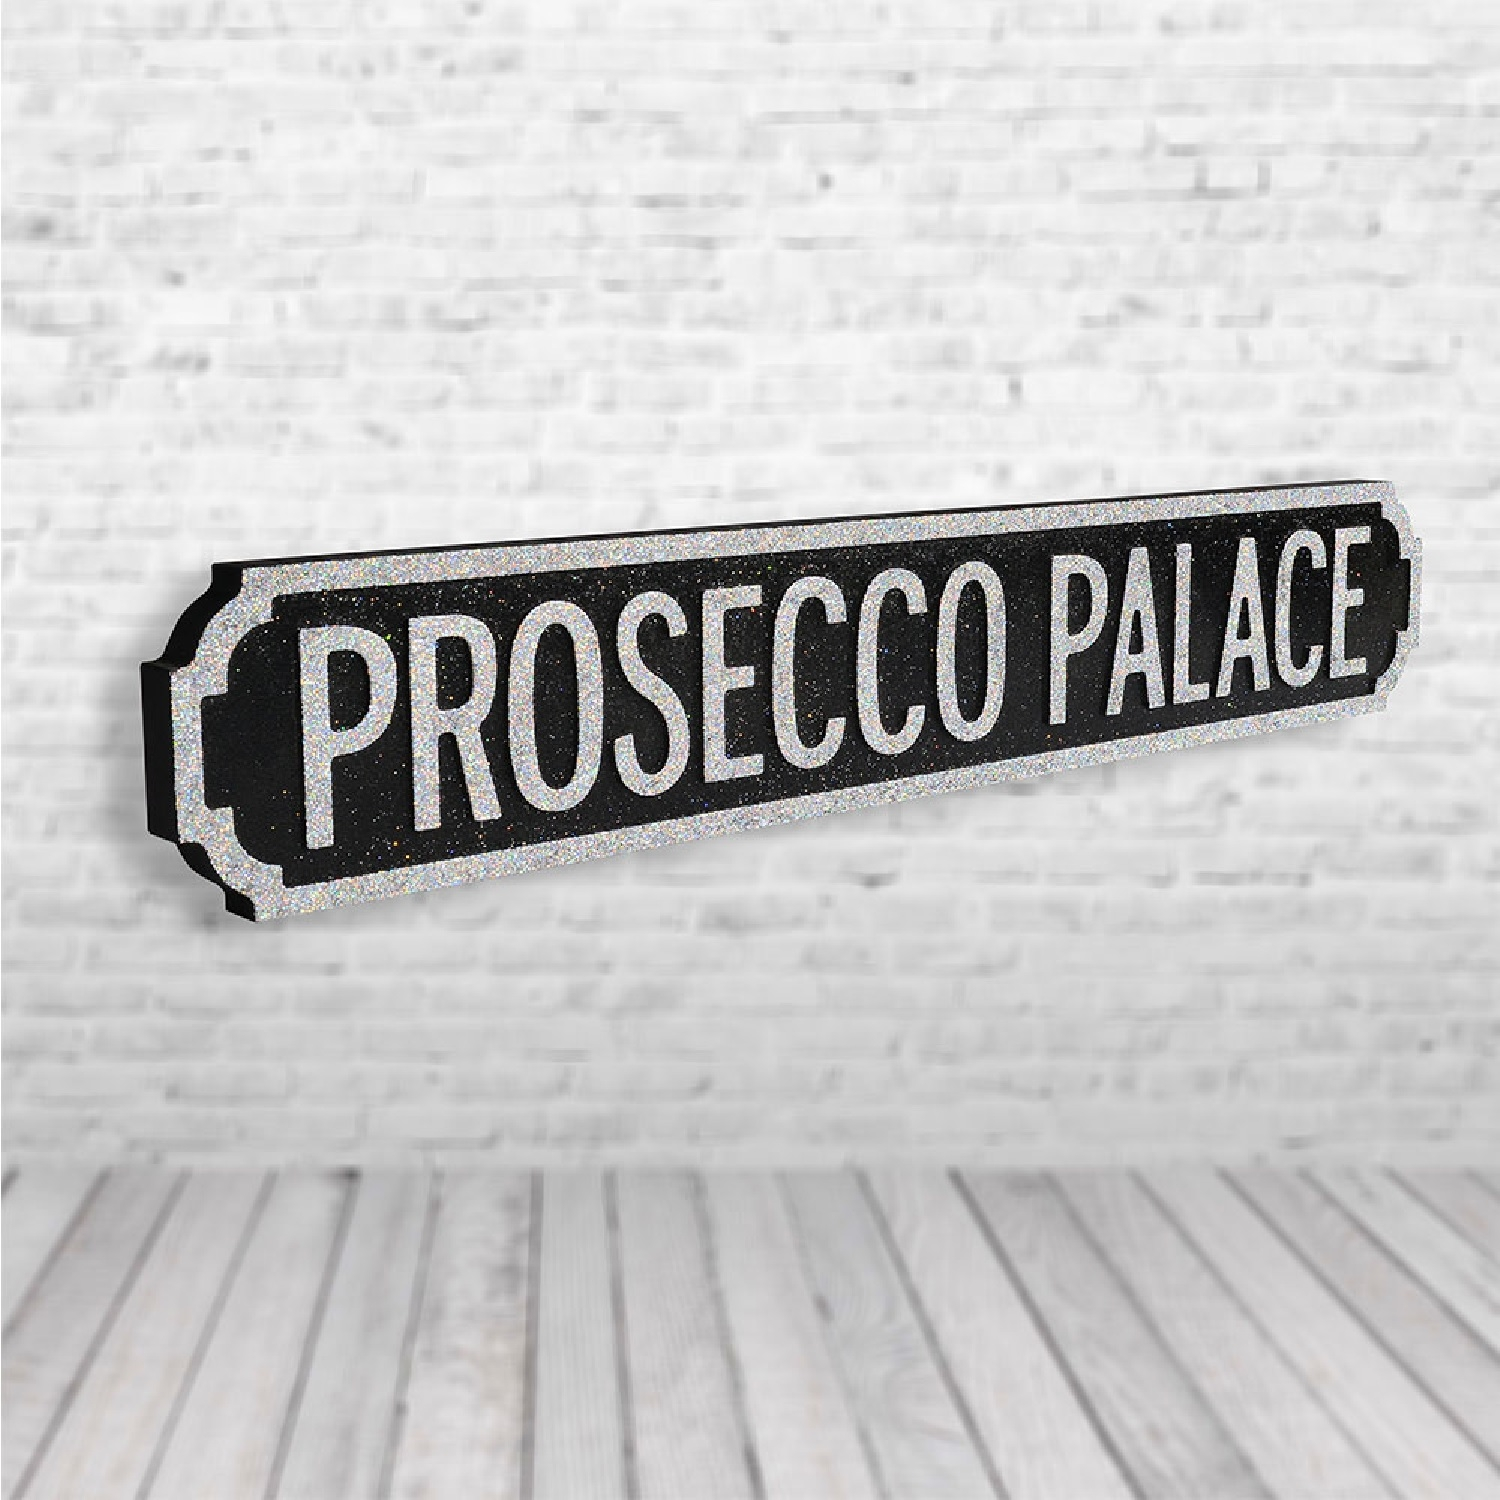 Image of Prosecco Palace Vintage Road Sign